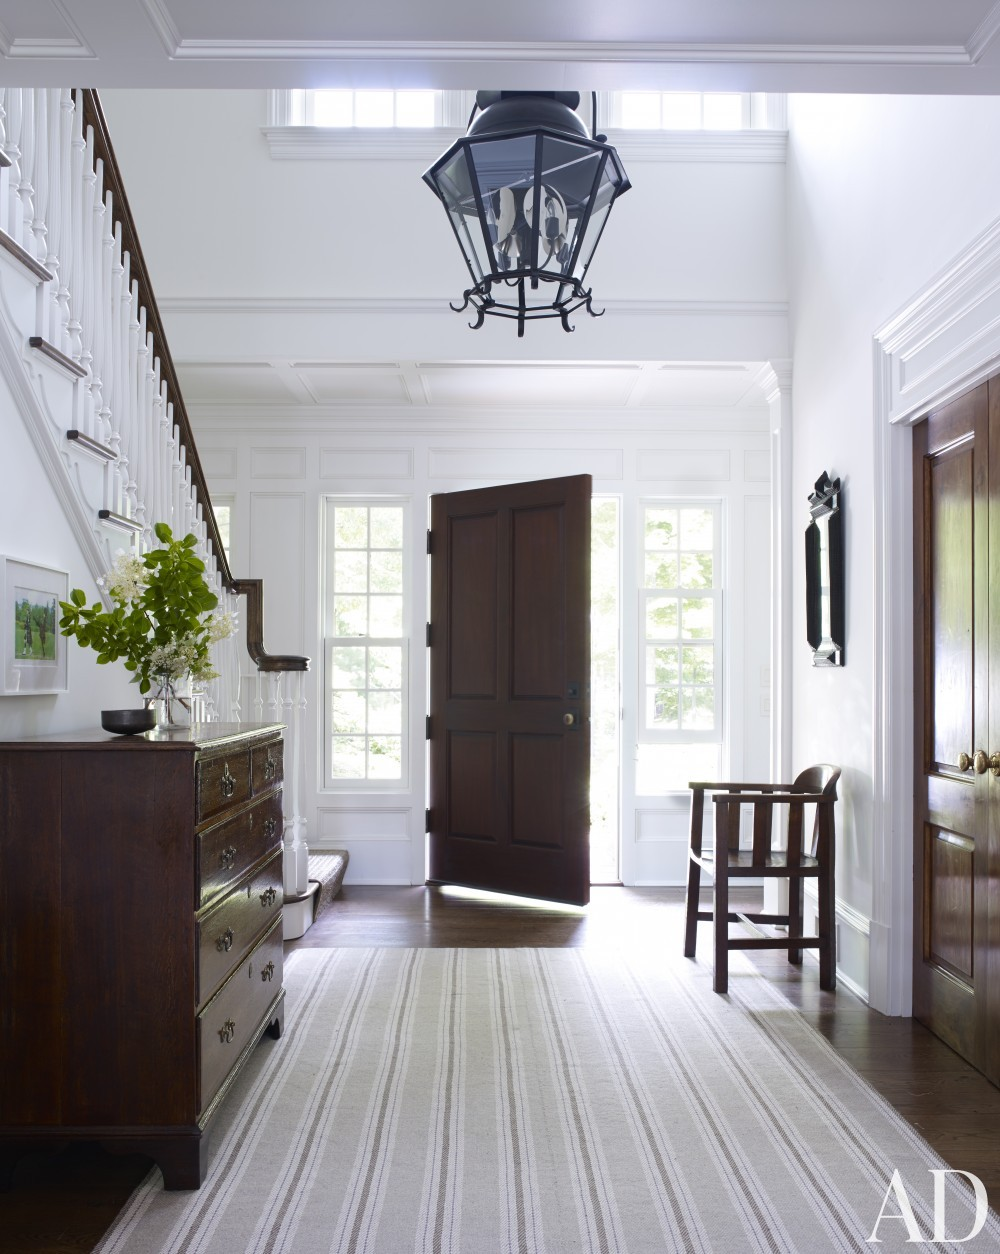 Entrance Hall by Mark Cunningham in Northwestern Connecticut